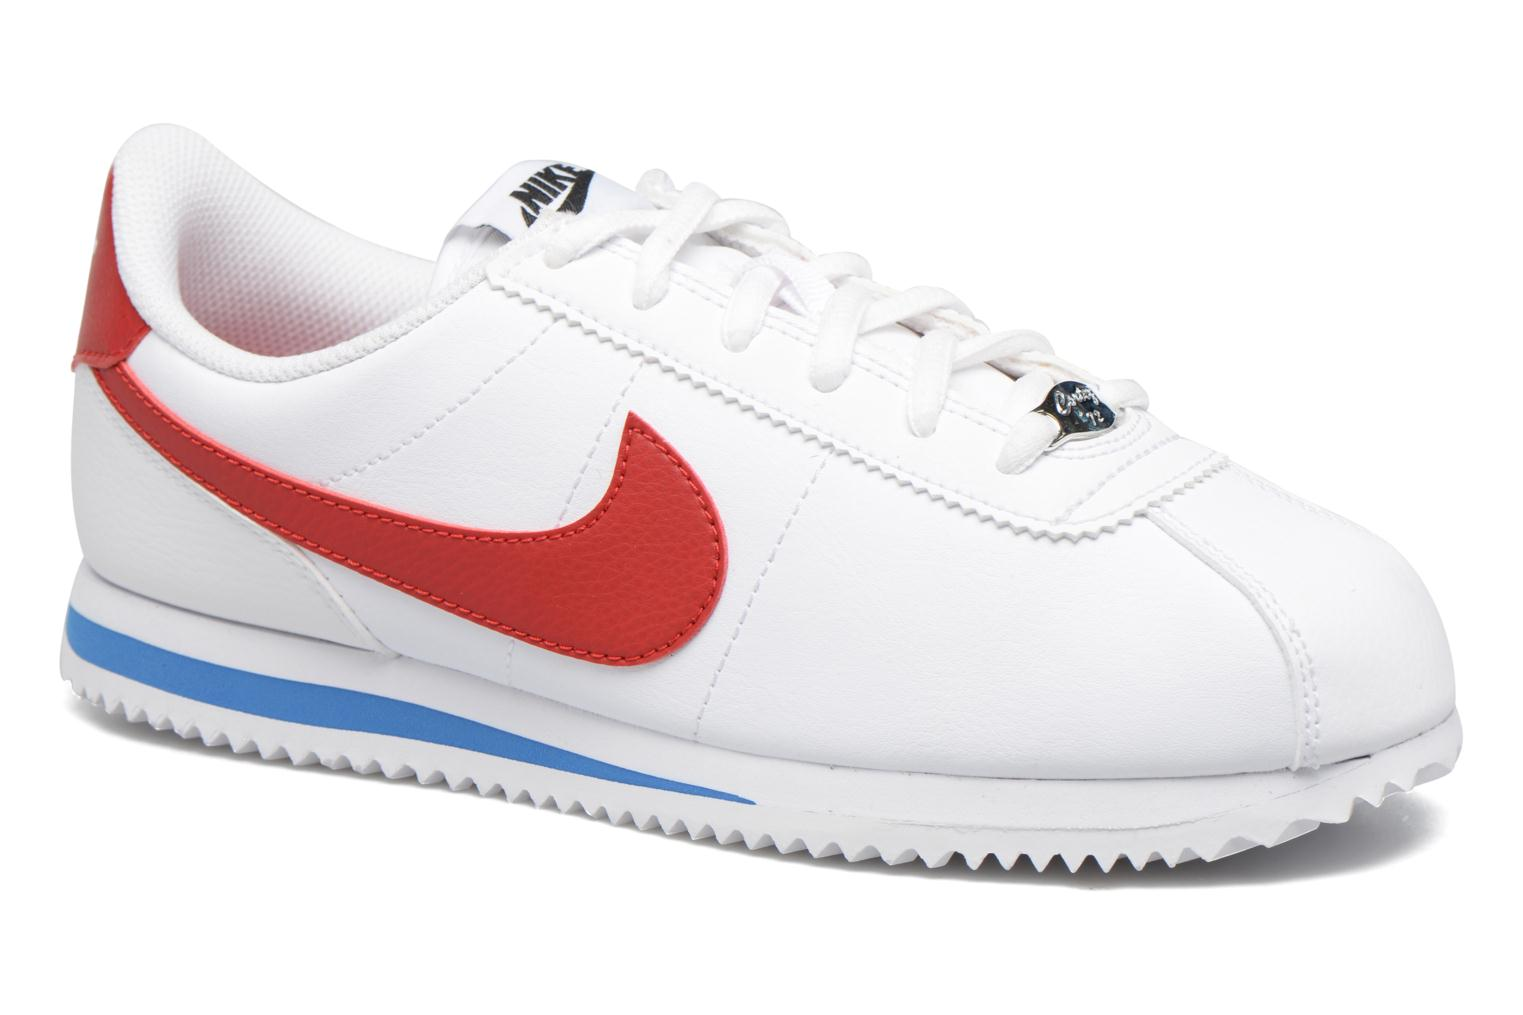 Cortez Basic Sl (Gs) White/Varsity Red-Varsity Royal-Black